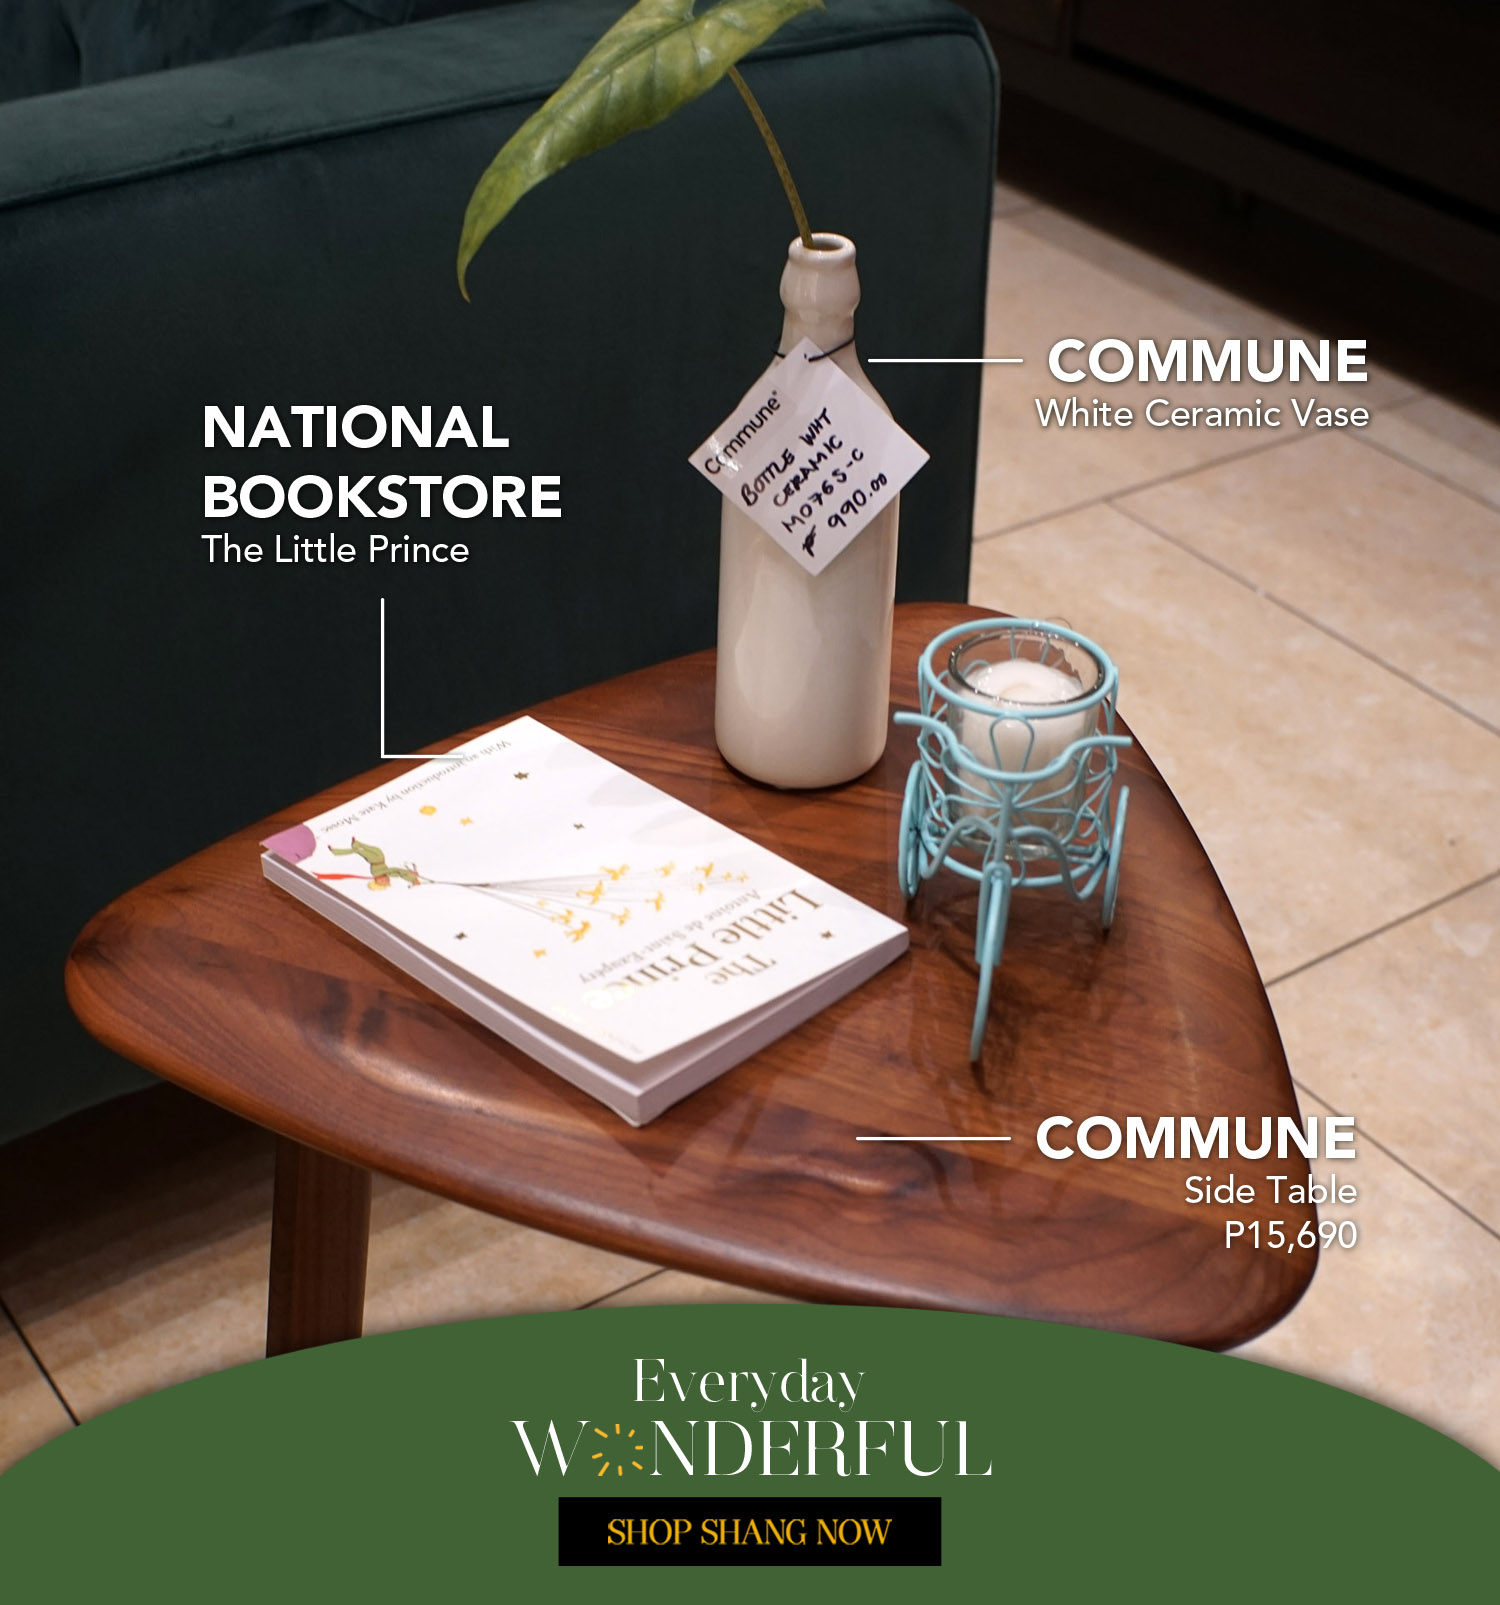 The Little Prince from National Bookstore _ White Ceramic Vase & Brown Wood Side Table from Commune